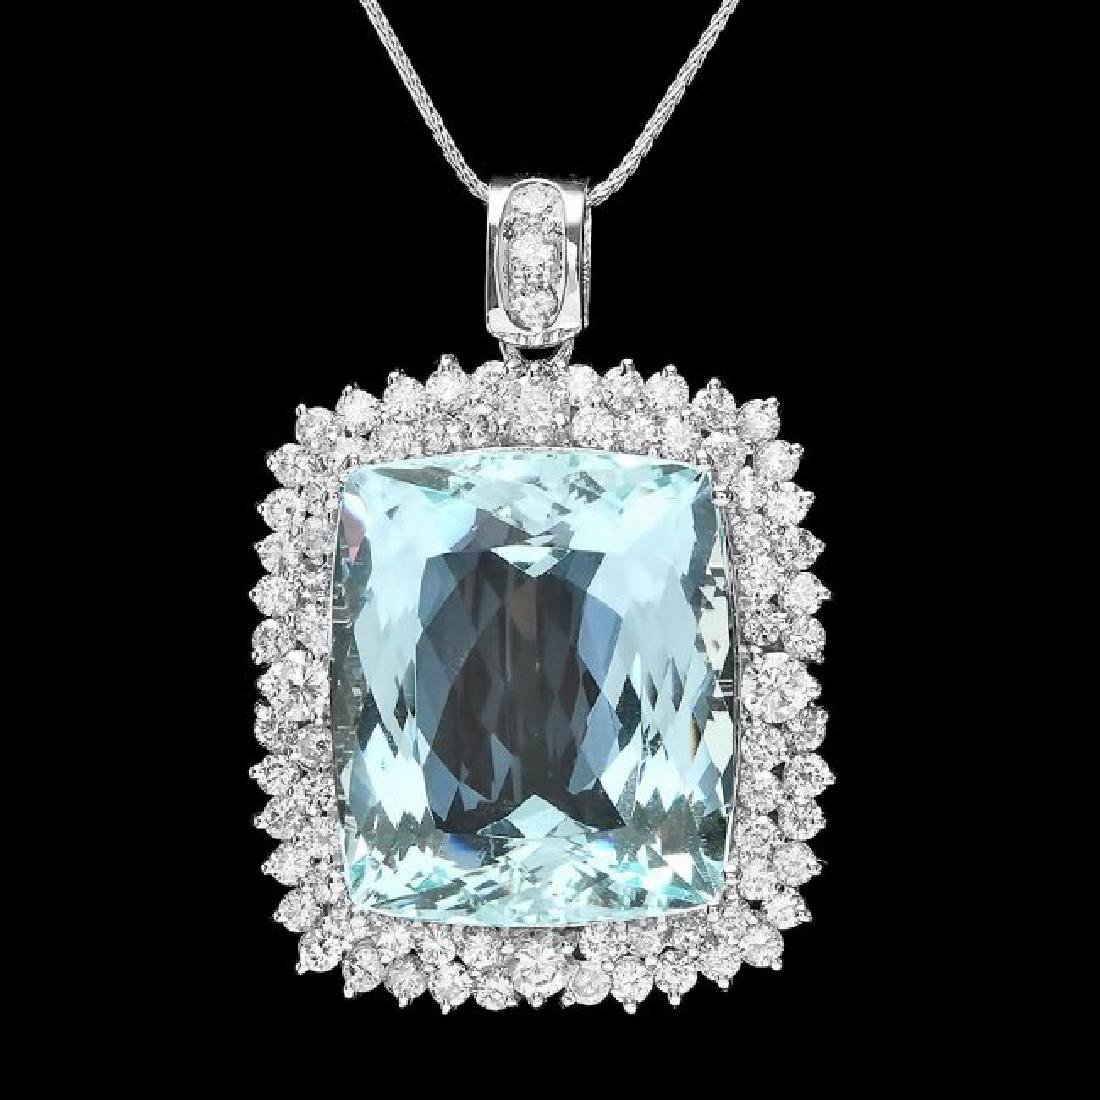 14k 38.00ct Aquamarine 3.55ct Diamond Pendant